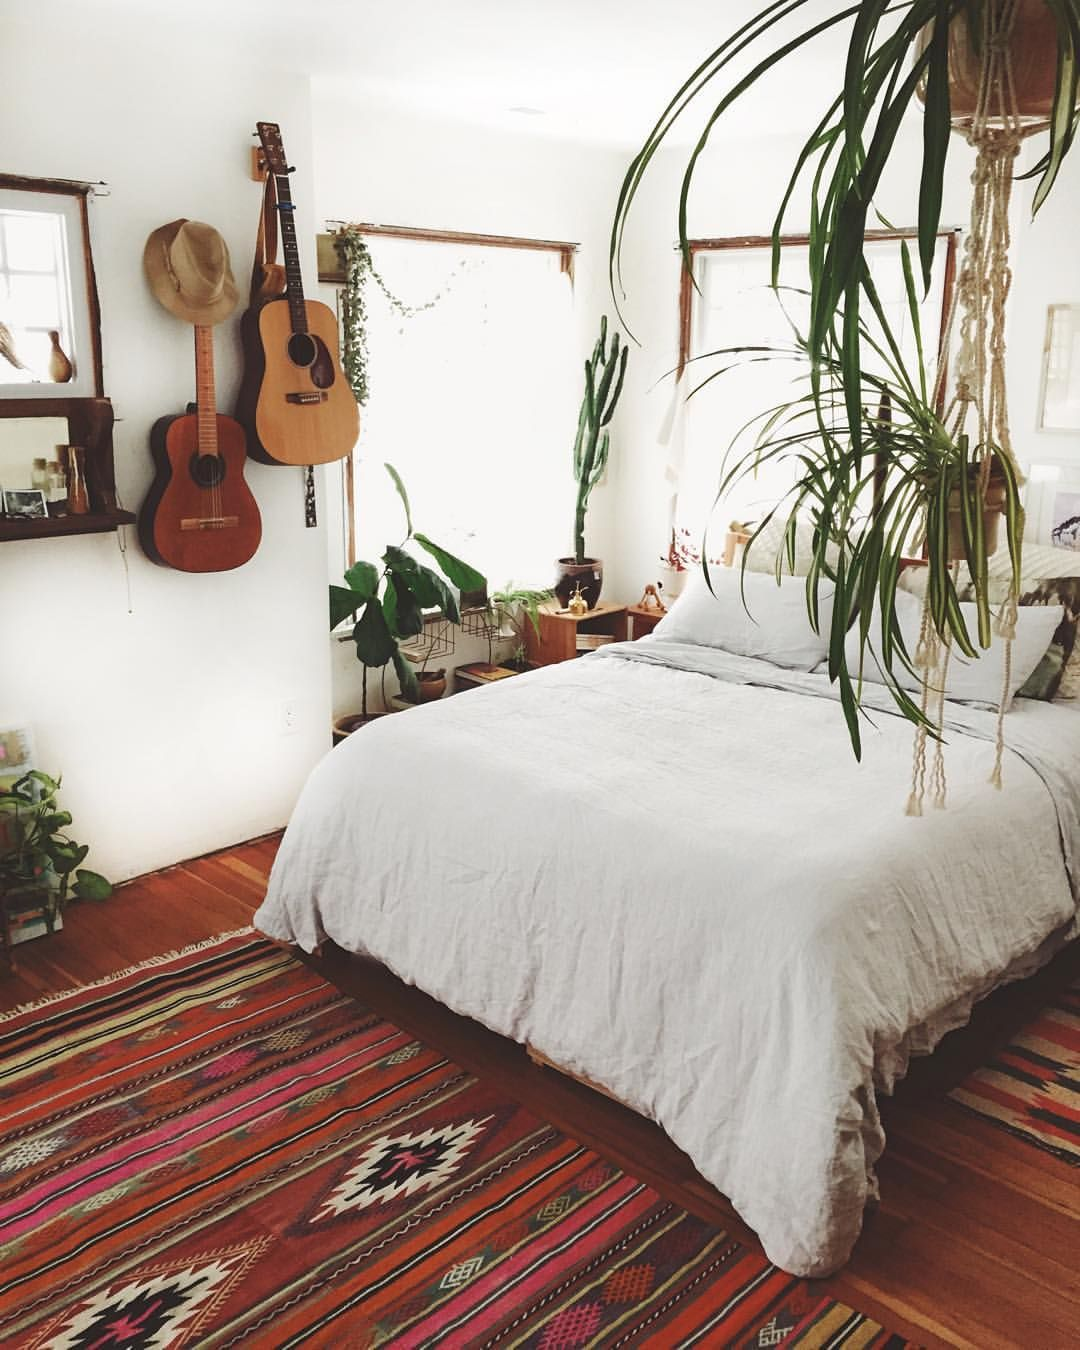 Hang C's guitar on the wall ? … | Guest bedroom design ...